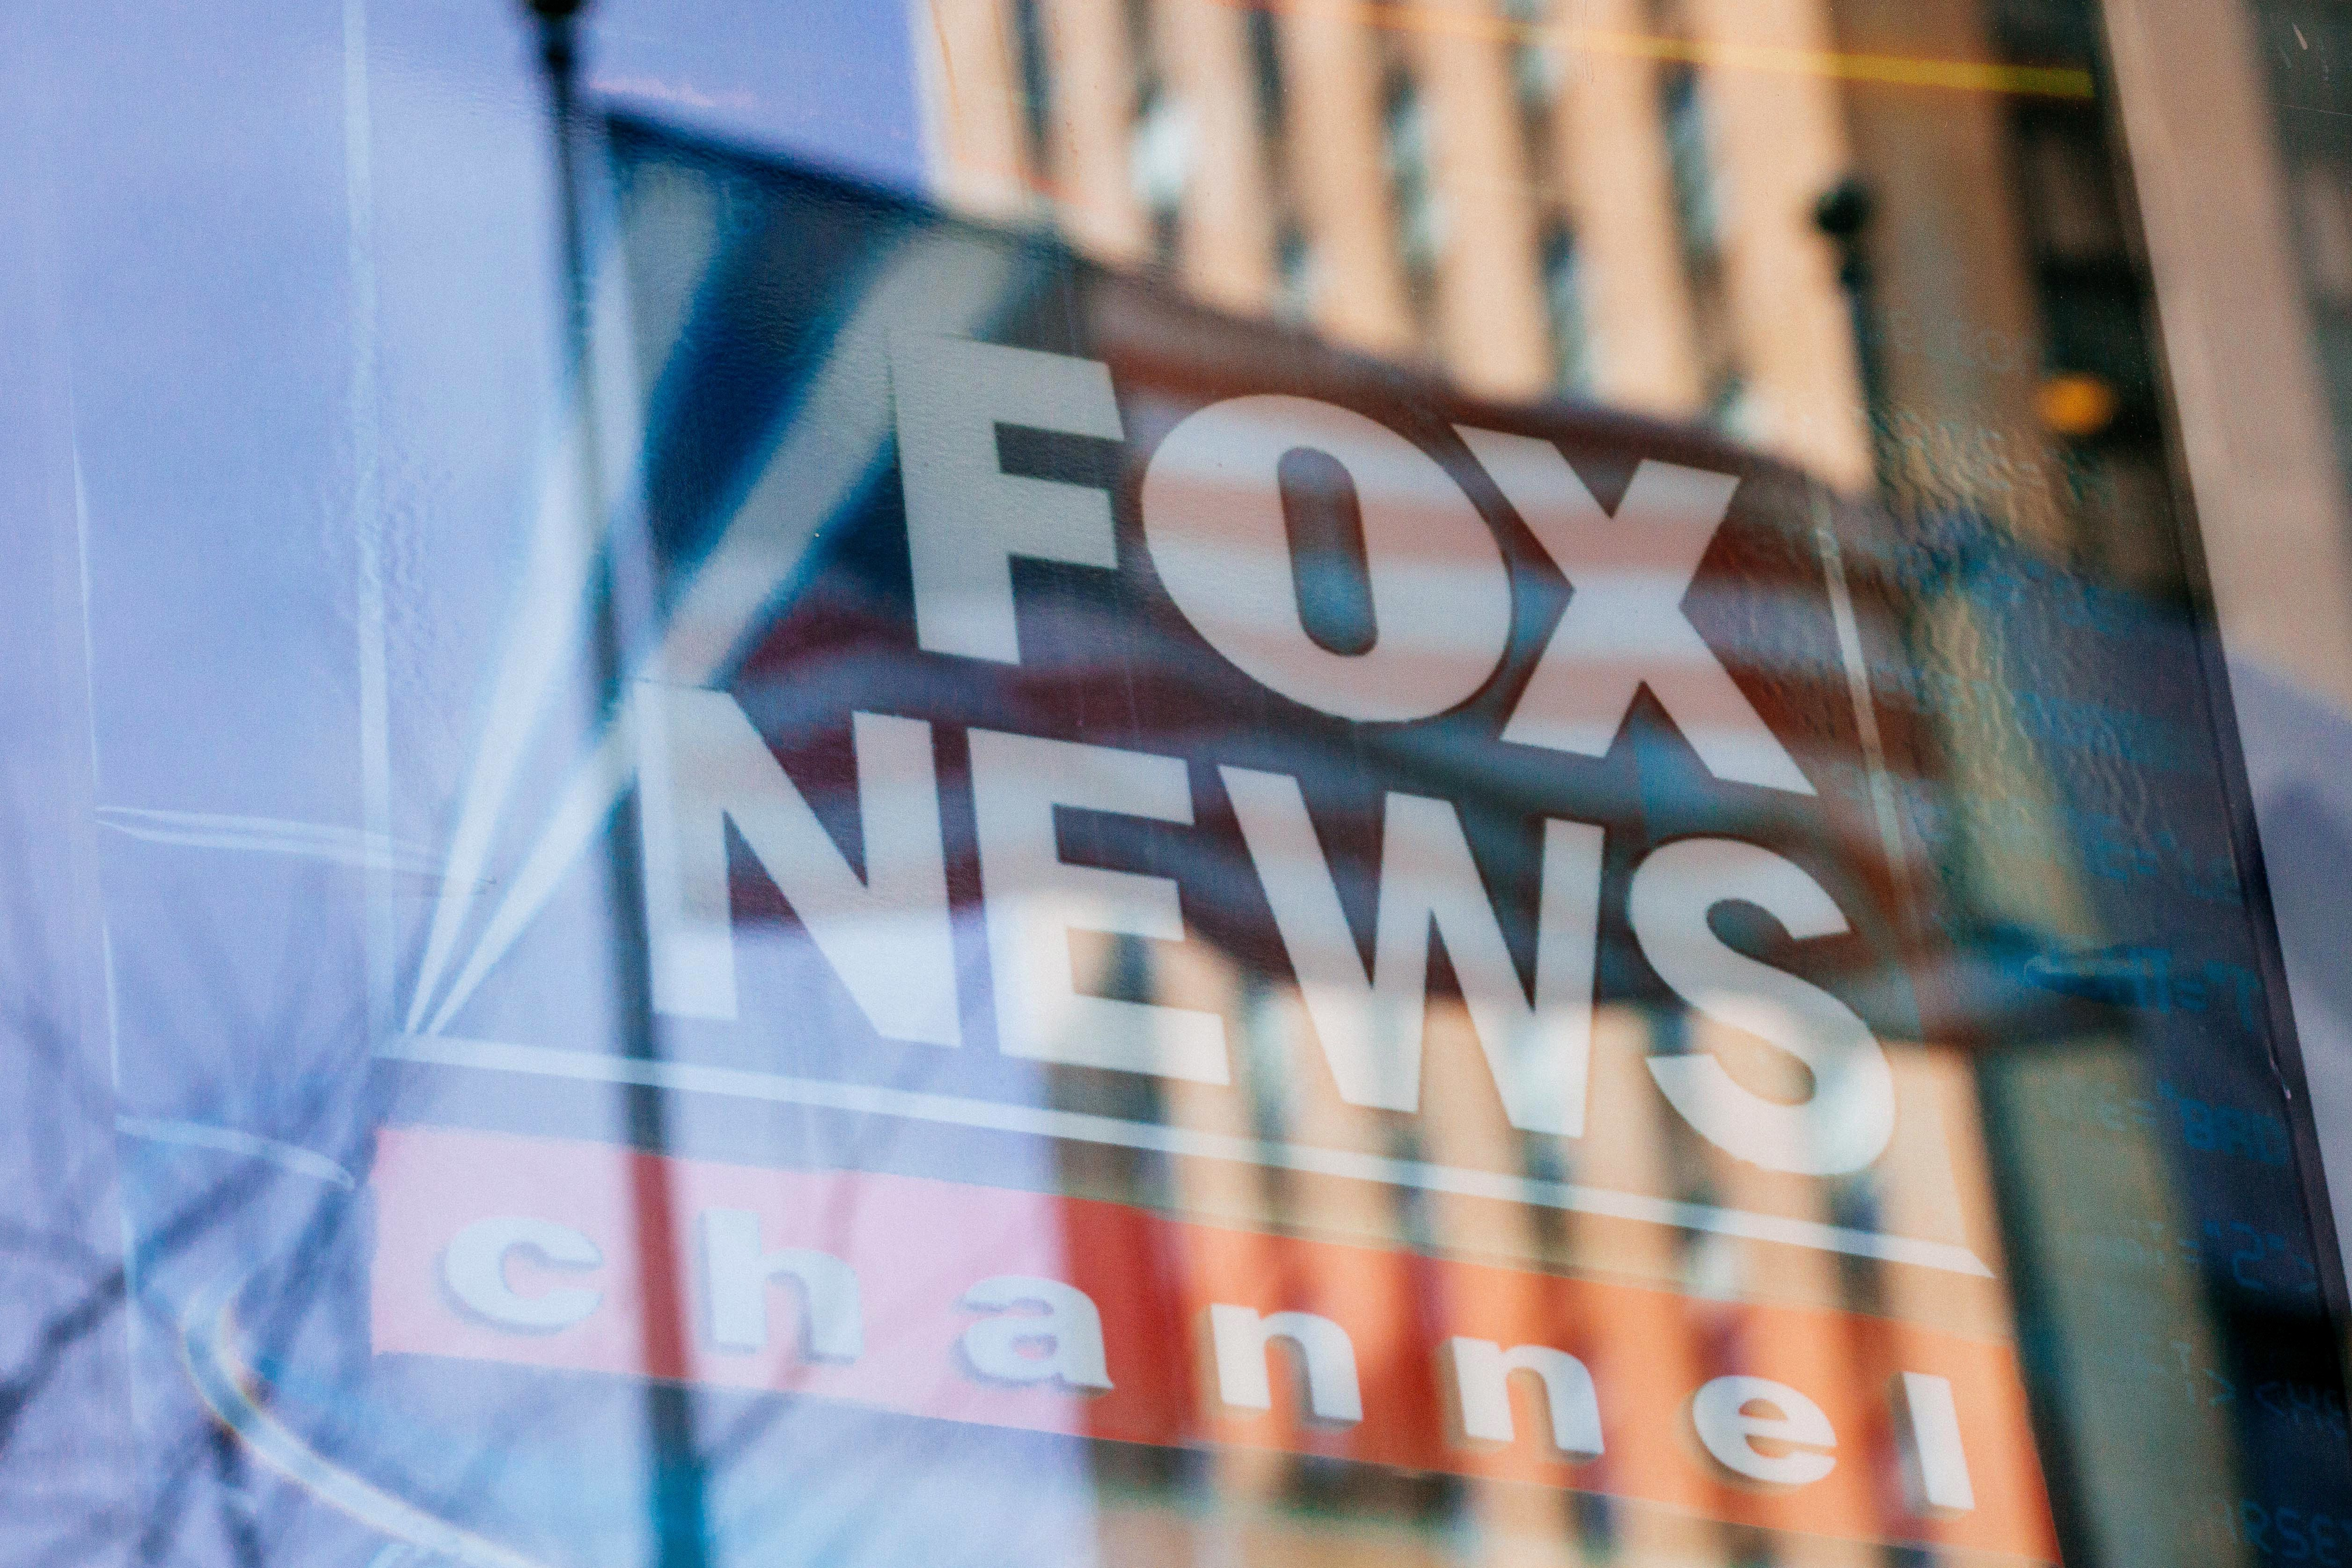 NEW YORK, NY - MARCH 20: The News Corp. building on 6th Avenue, home to Fox News, the New York Post and the Wall Street Journal, on March 20, 2019 in New York City, New York. Disney acquired Fox today in a $71.3 million deal. (Photo by Kevin Hagen/Getty Images)